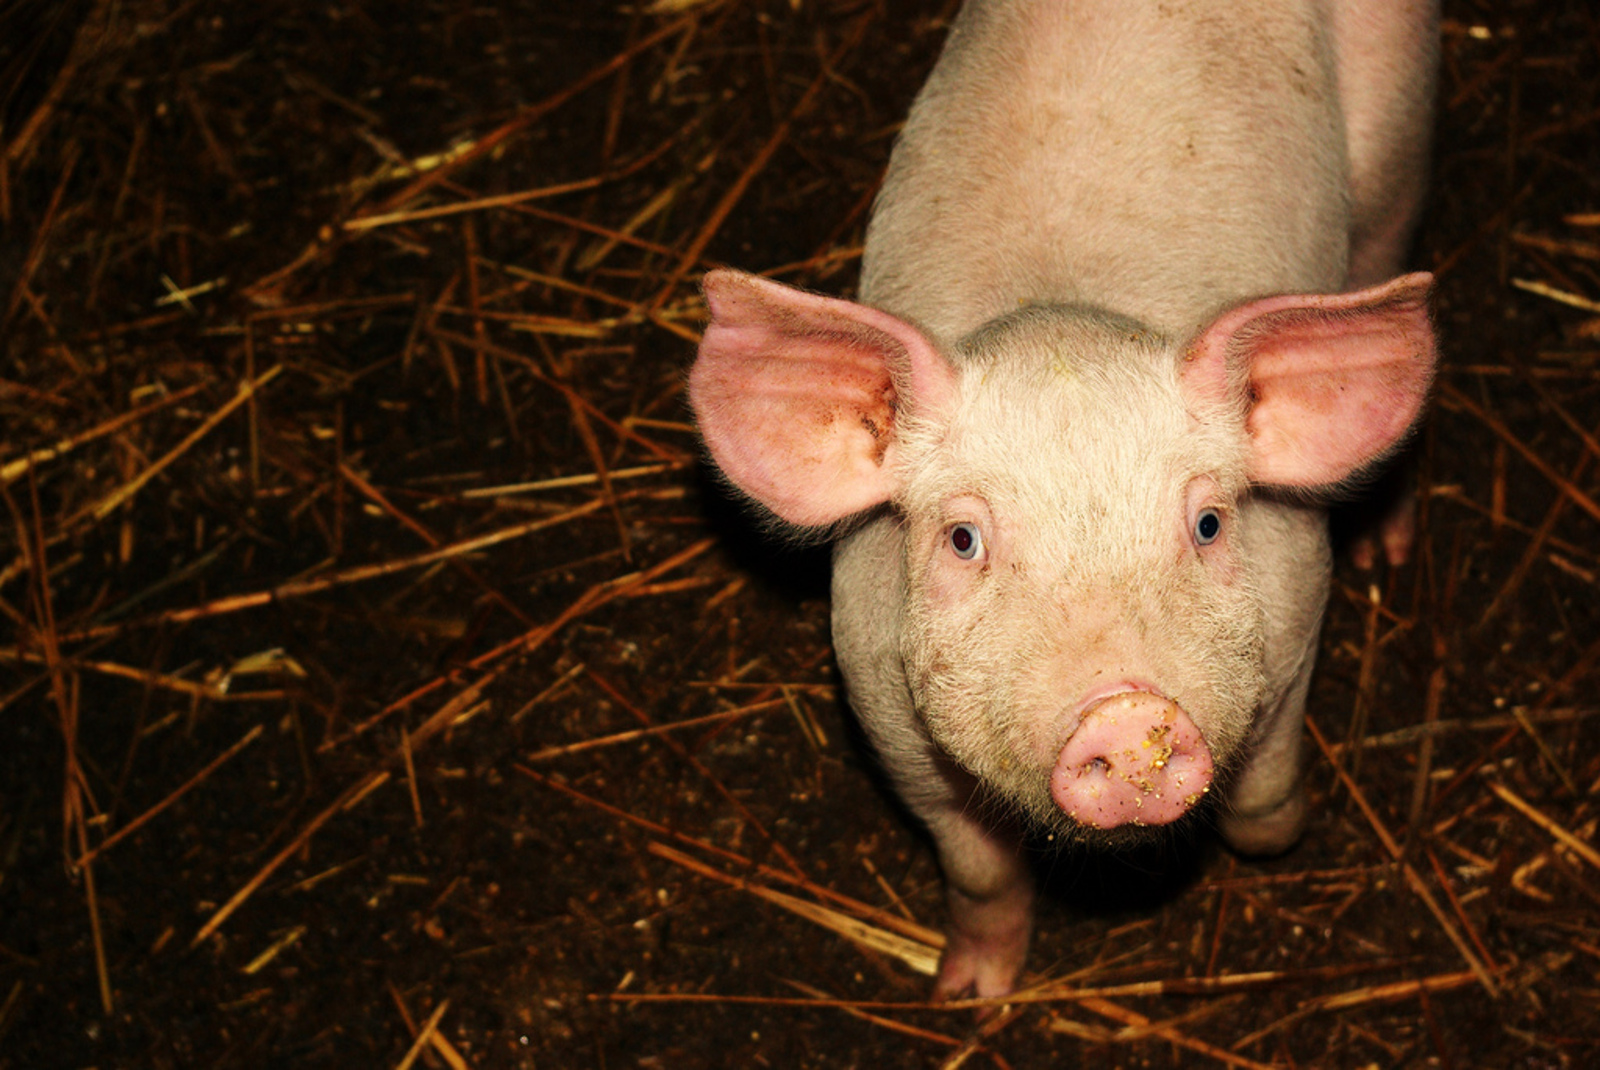 Cruelty in Factory Farms: Intentional Abuse or Systemized Suffering?